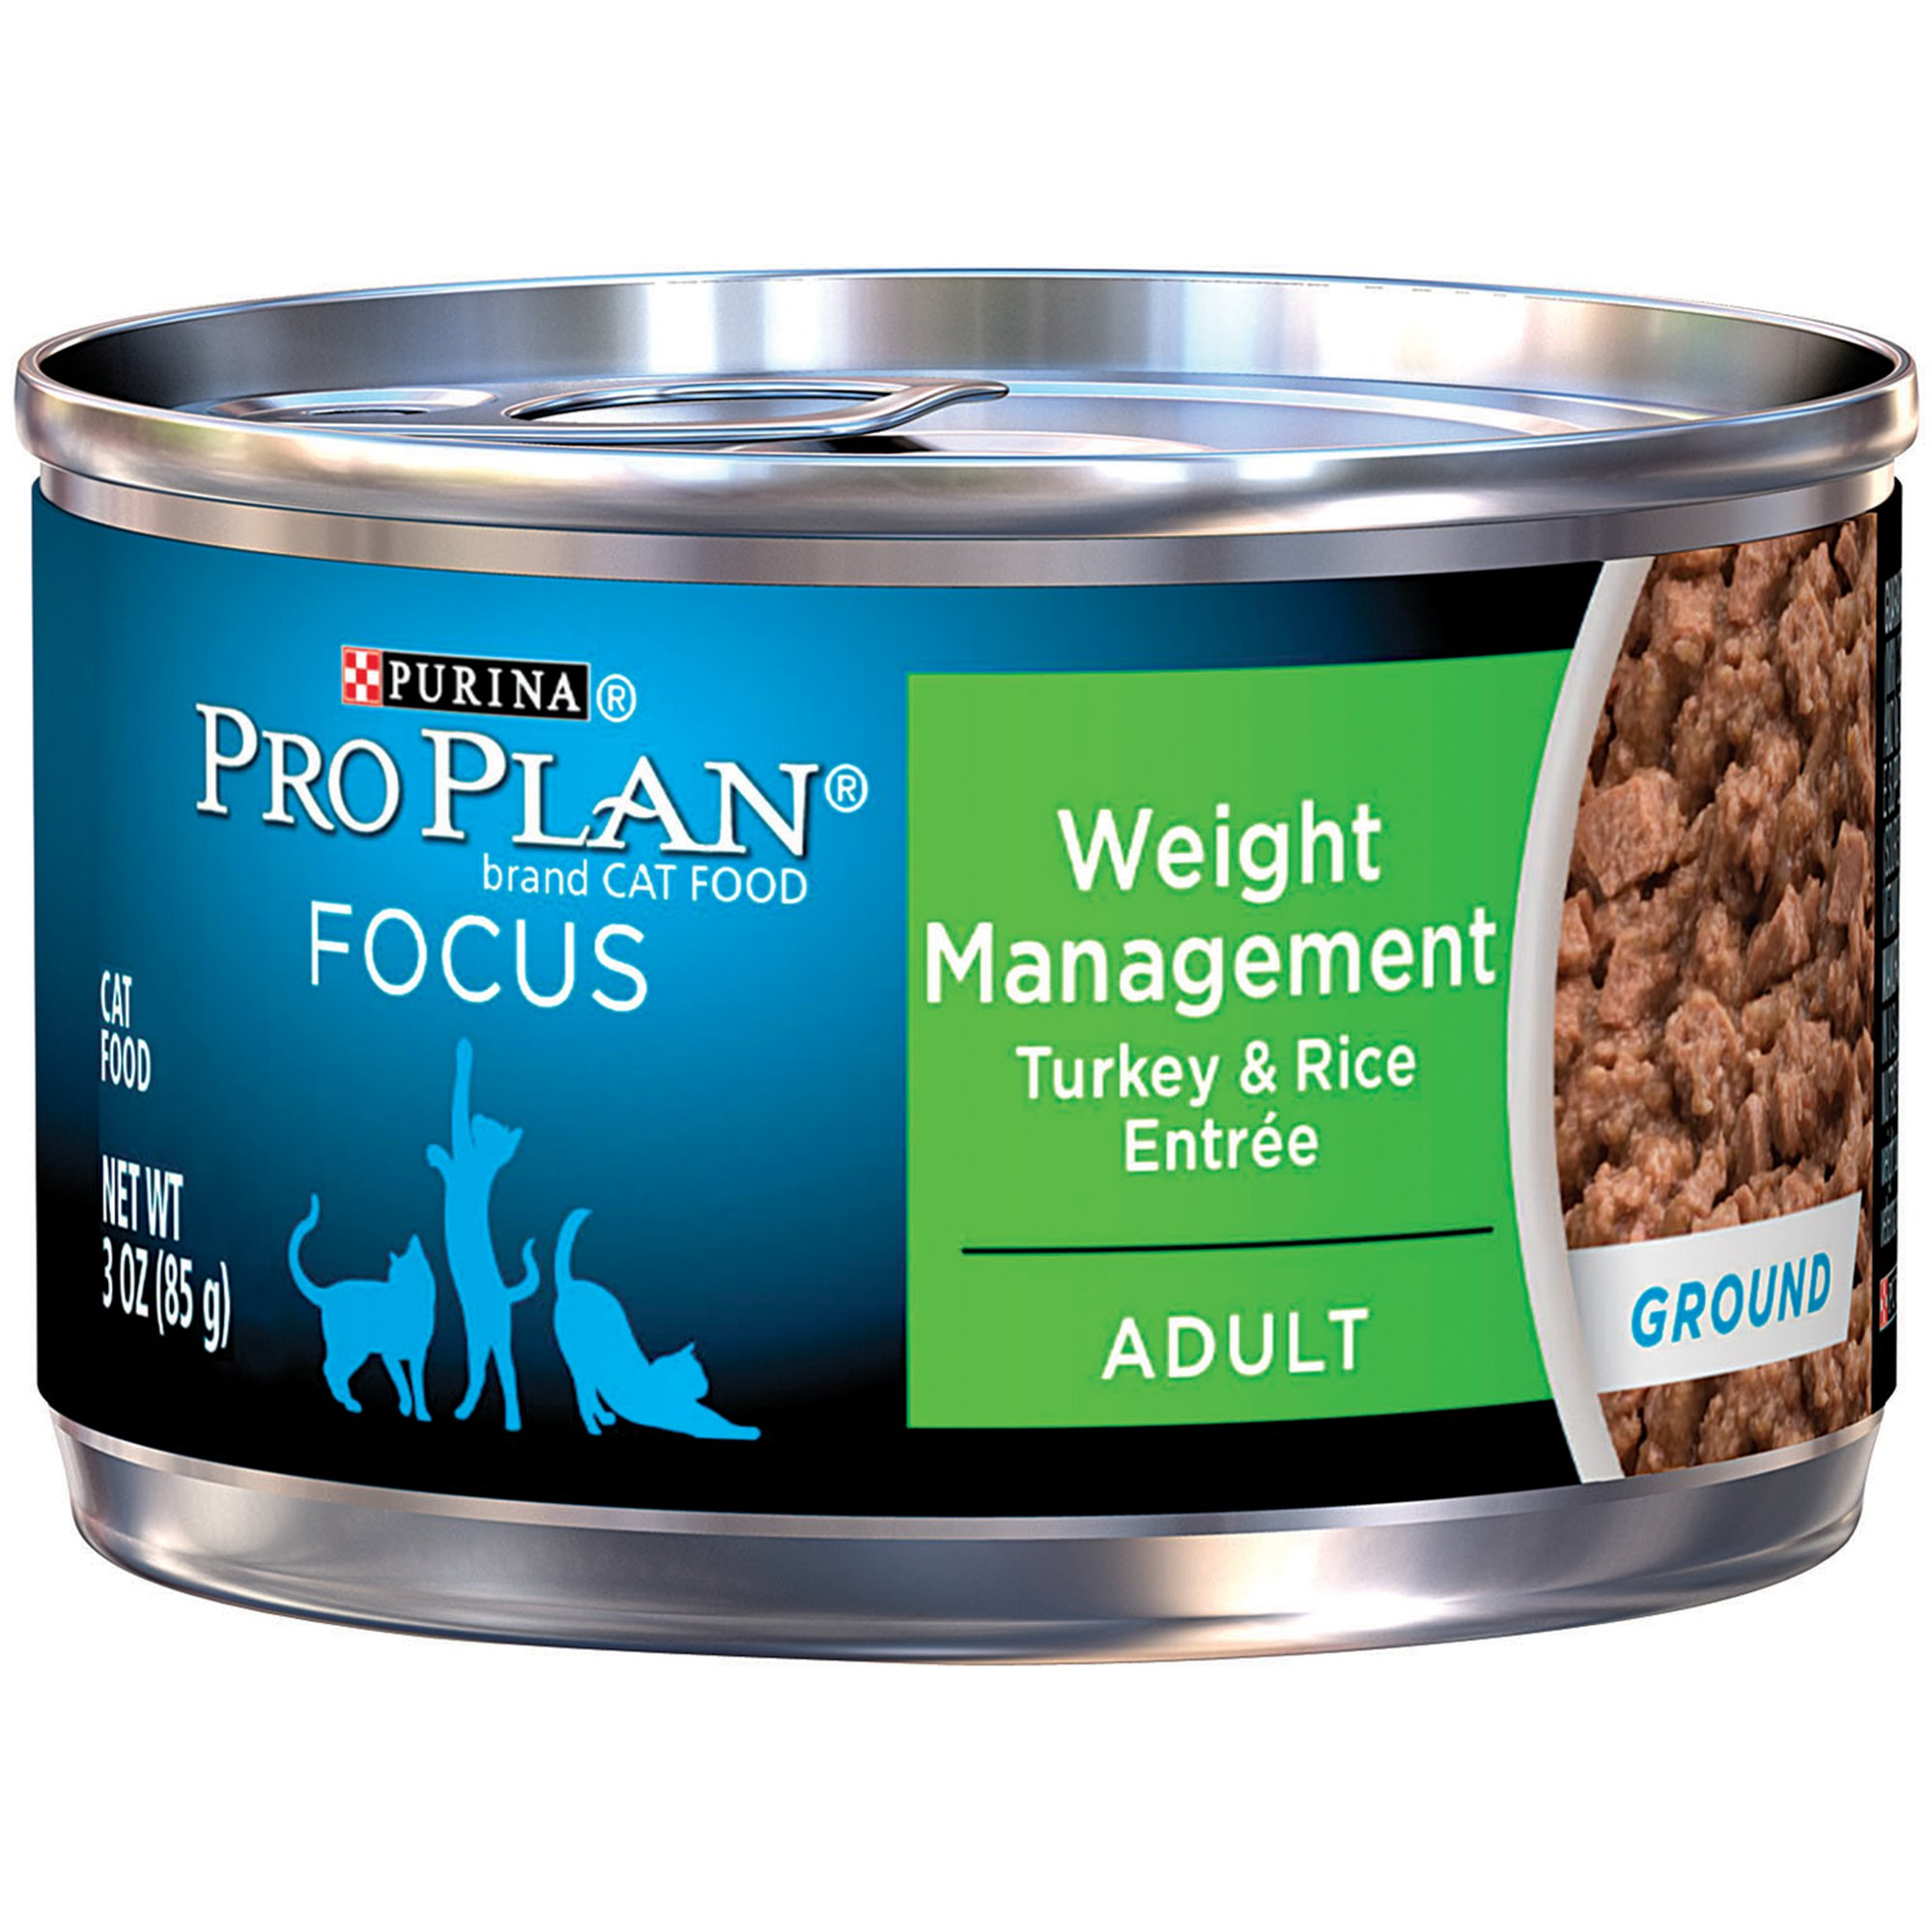 Pro Plan Focus Weight Management Canned Cat Food Petco